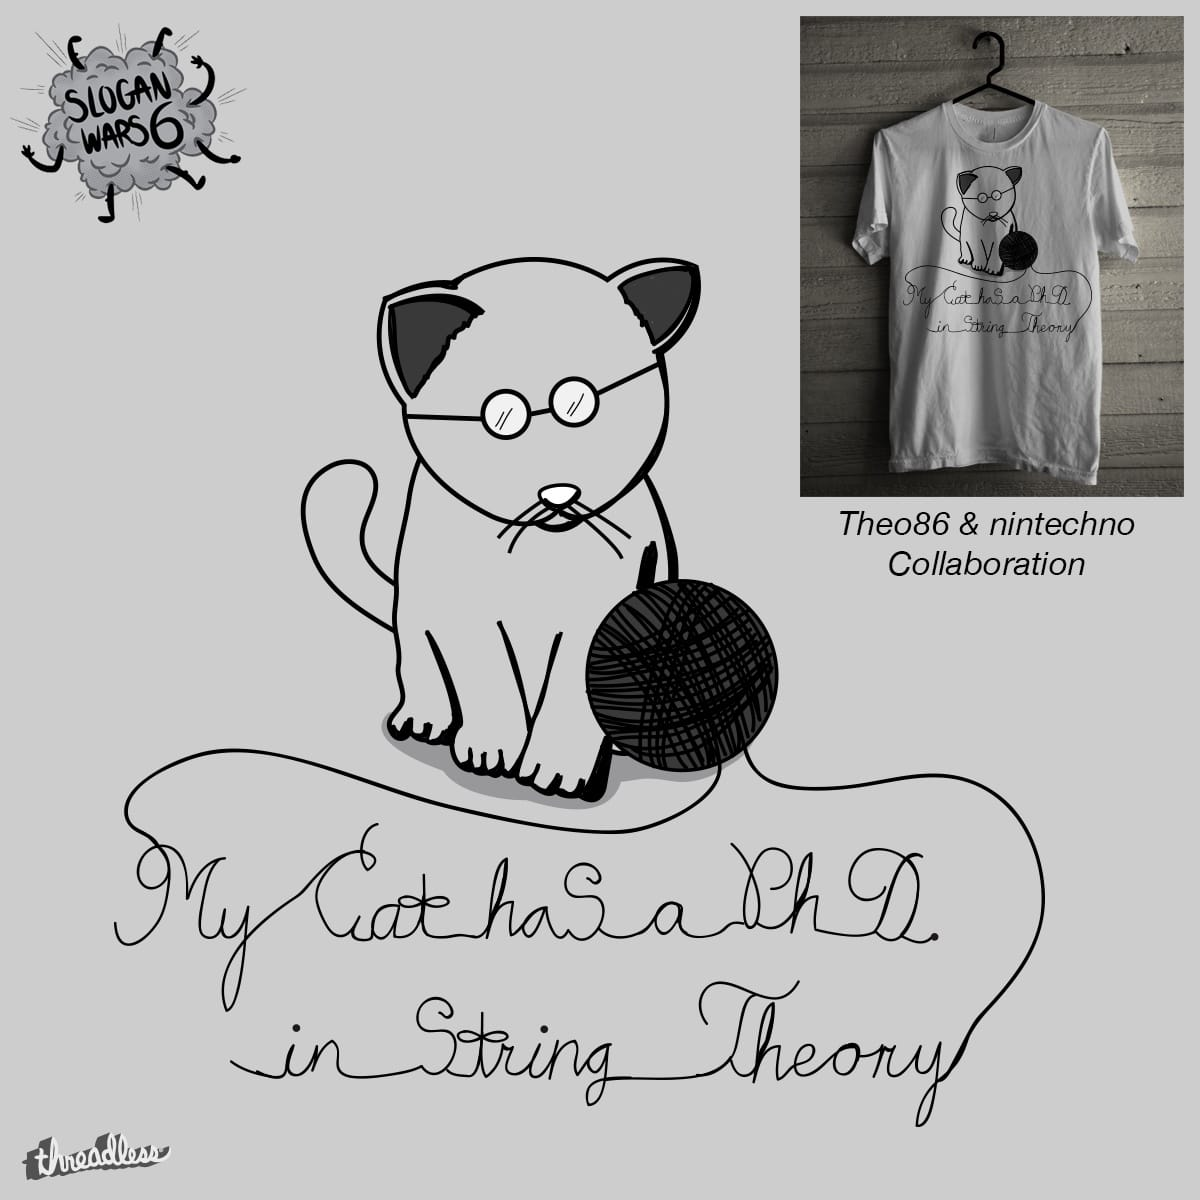 My Cat has a PhD. in String Theory by Theo86 and nintechno on Threadless